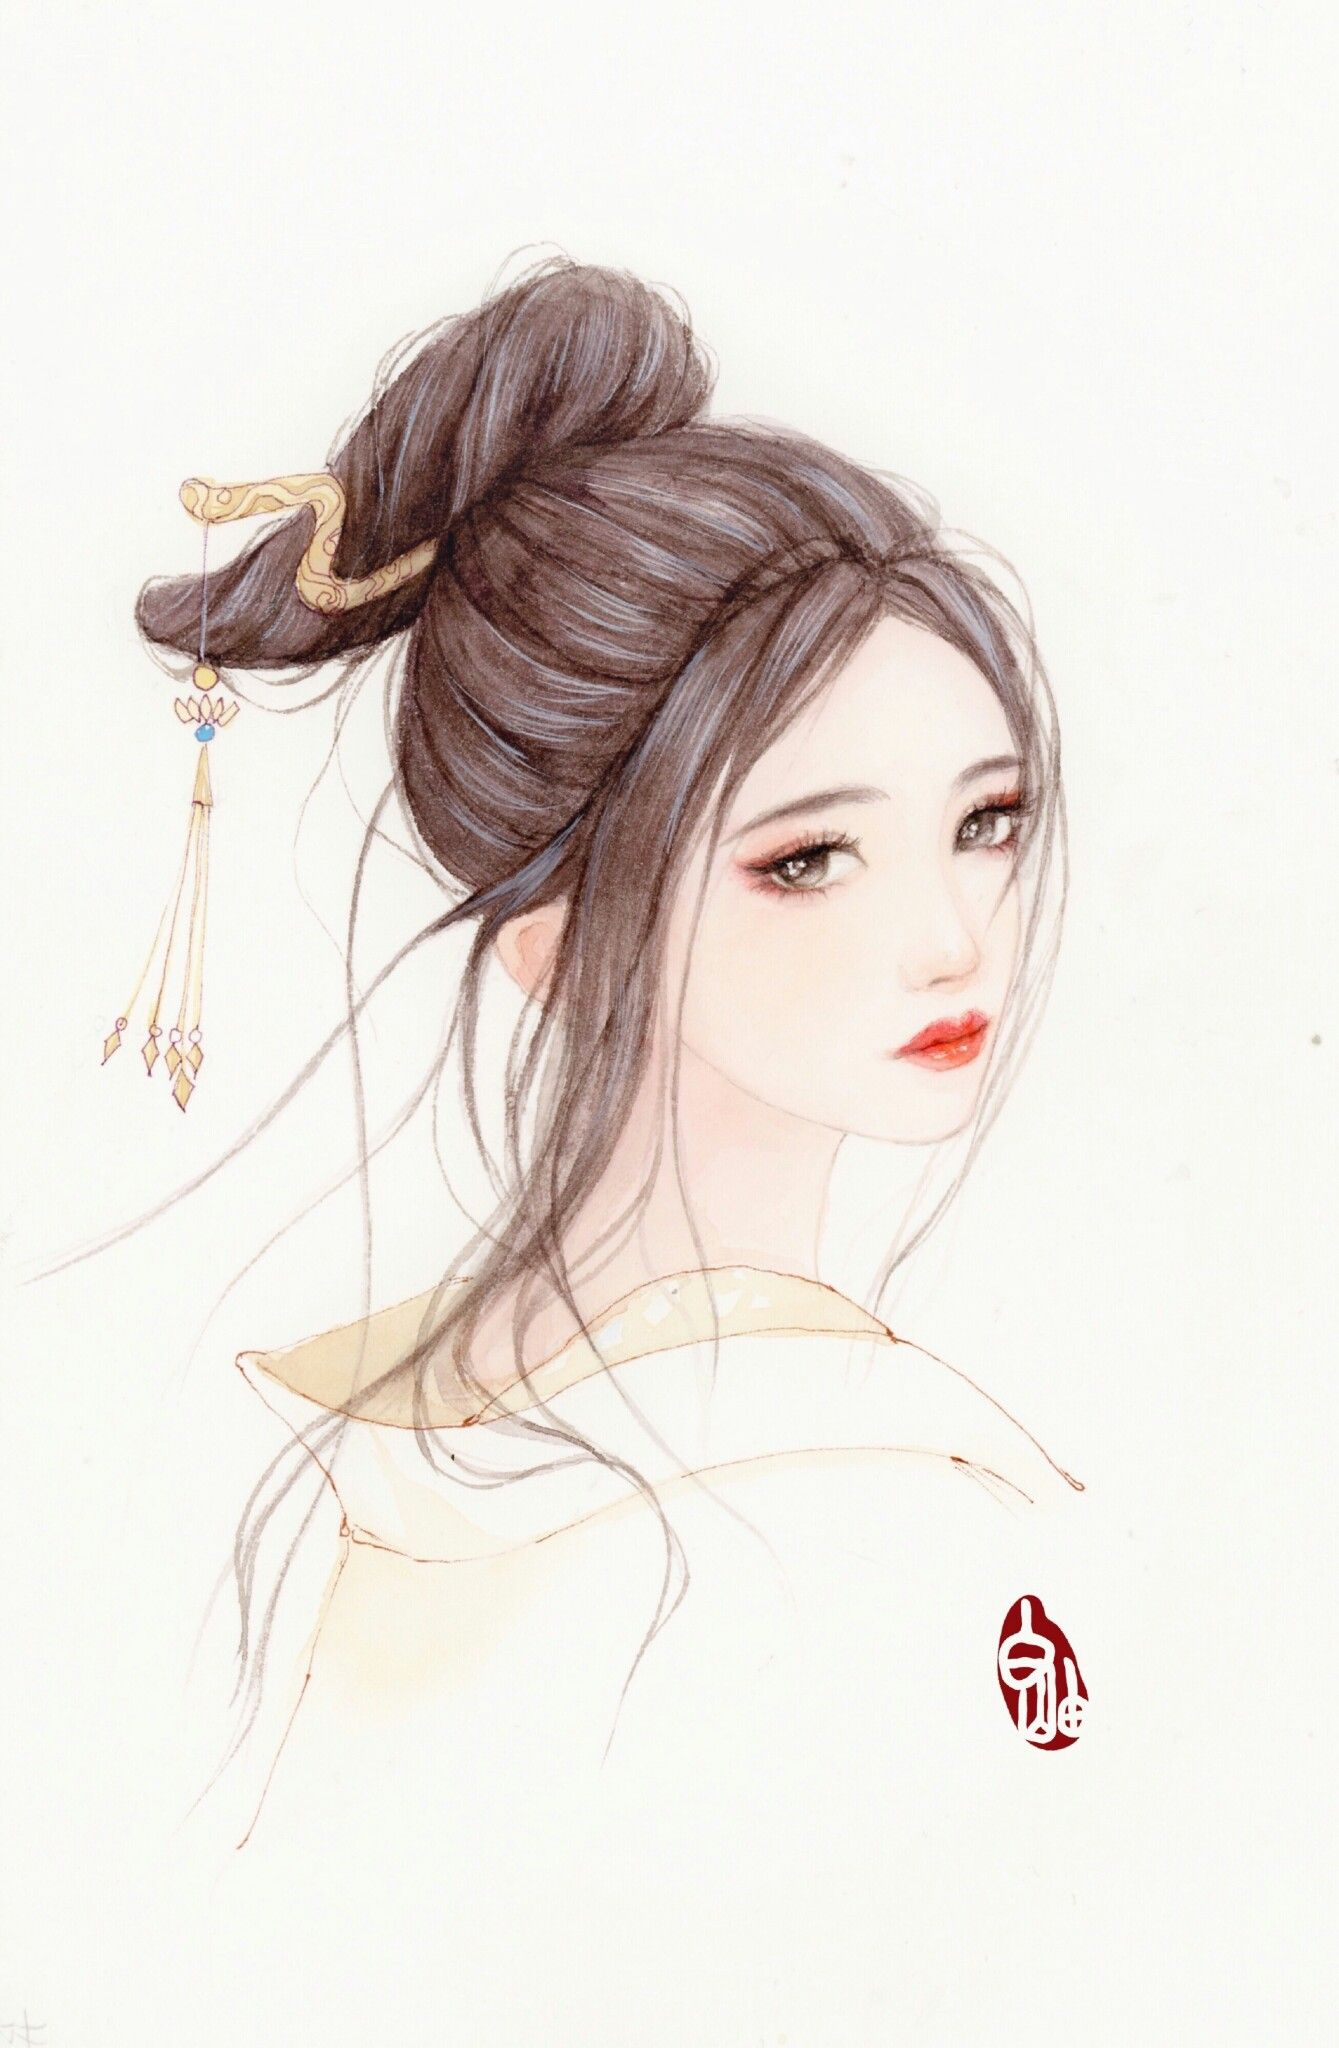 Pin By 樂 陳 On Art 古裝插畫 Chinese Art Girl Anime Art Girl